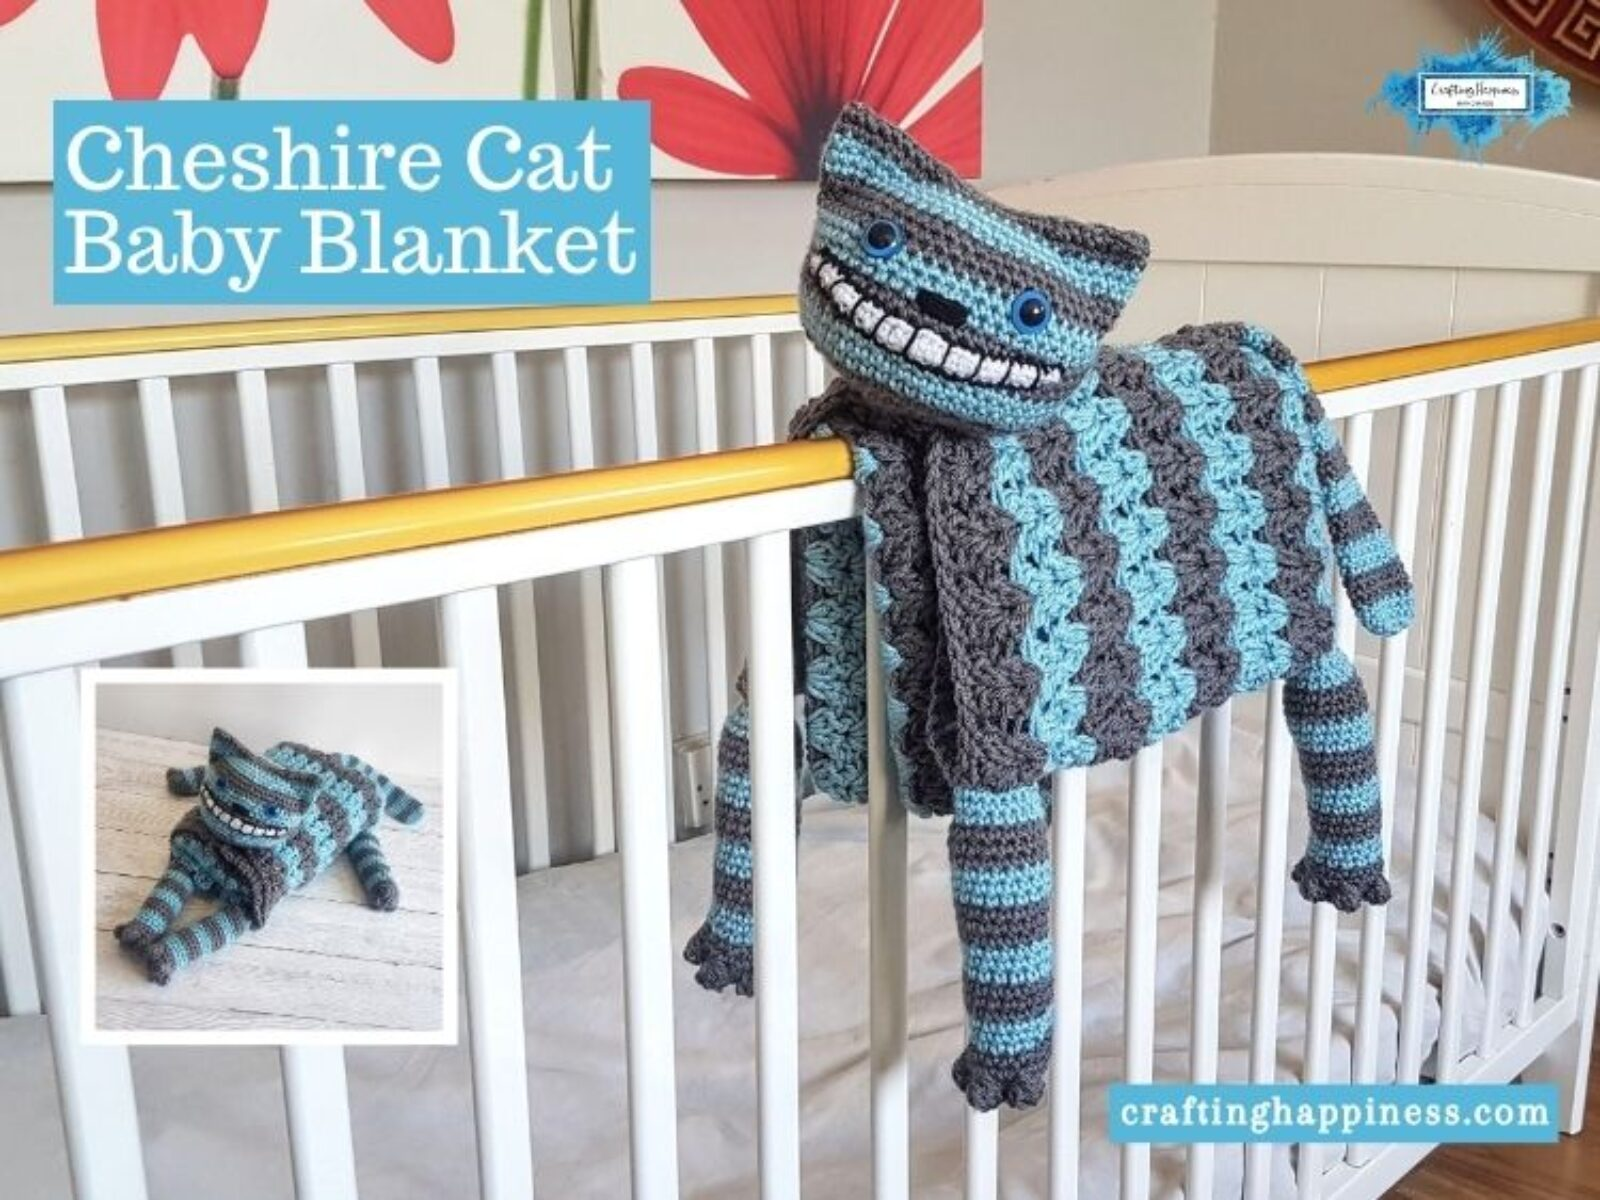 Cheshire Cat Baby Blanket - FACEBOOK BLOG POSTER